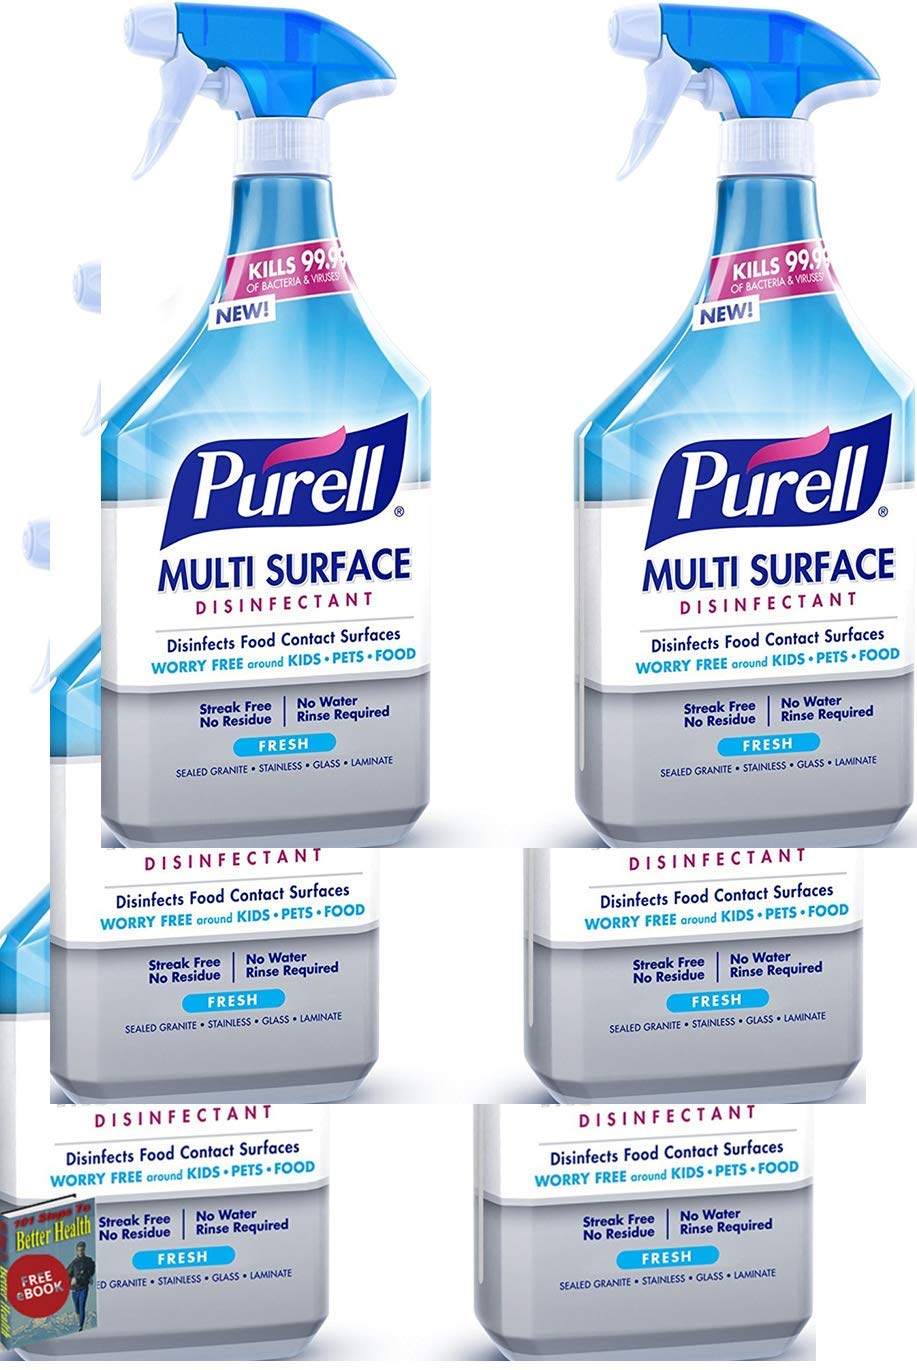 PURELL Multi Surface Disinfectant Spray - Fresh Fragrance, Voted 2018 Product of The Year - 28 oz. Spray Bottle - (PACK of 6)